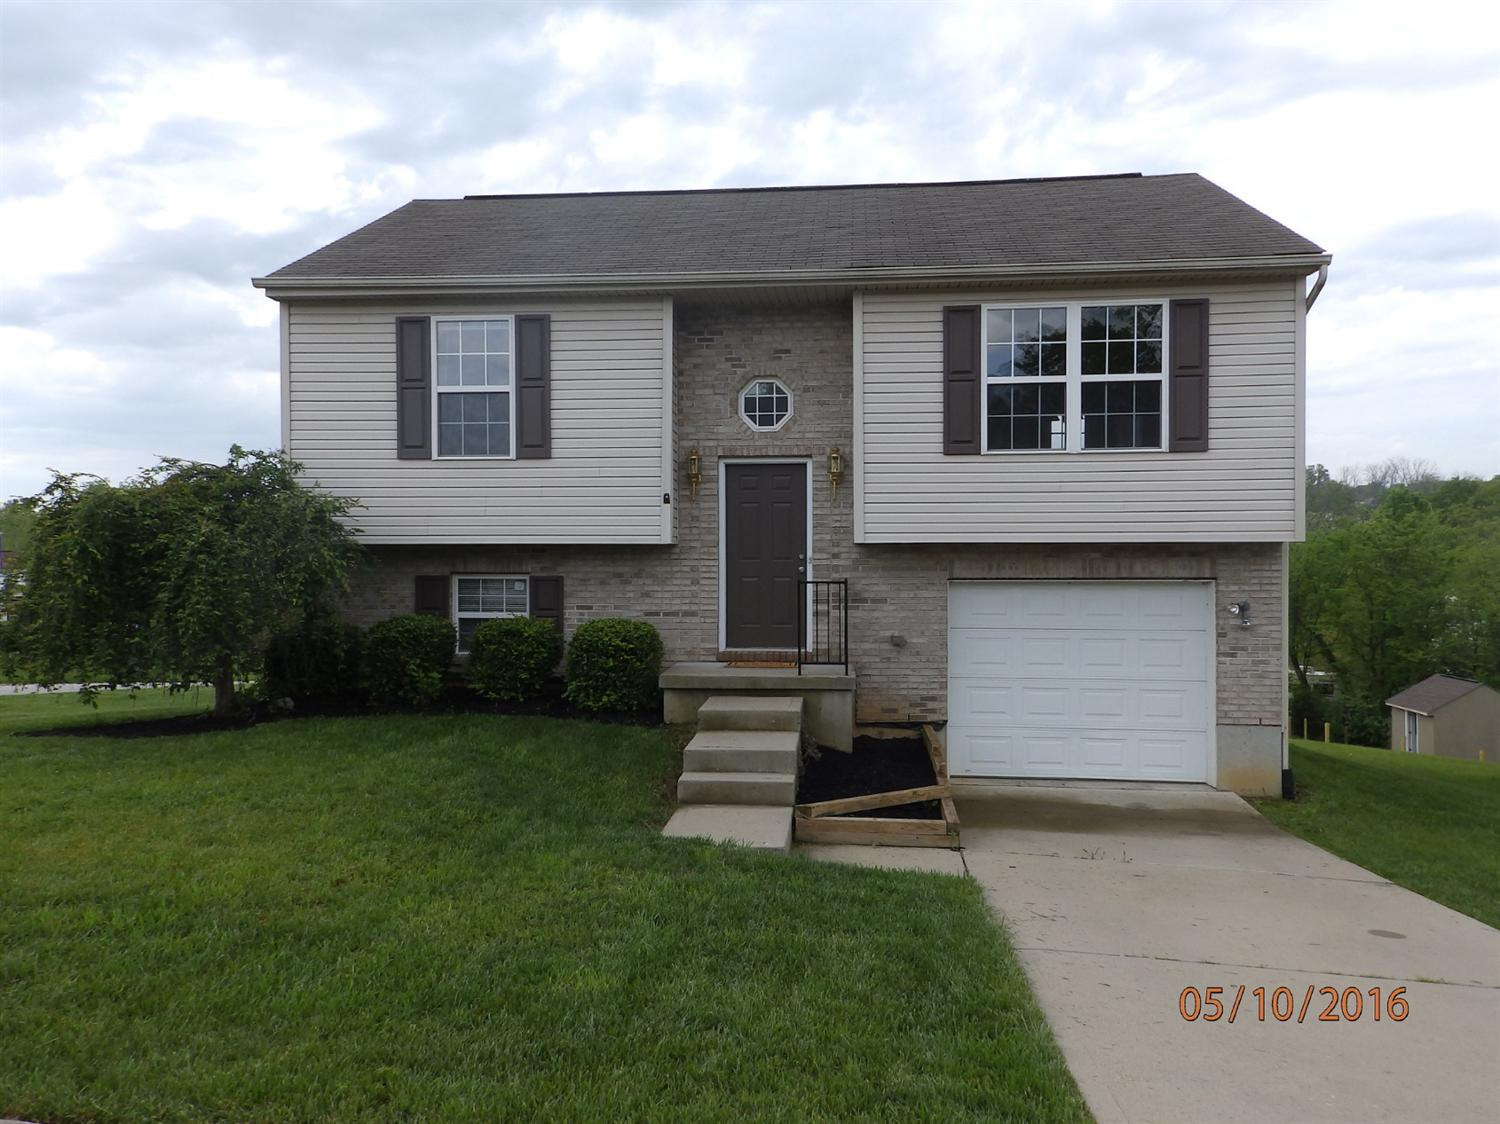 Photo 1 for 647 Berlander Dr Independence, KY 41051